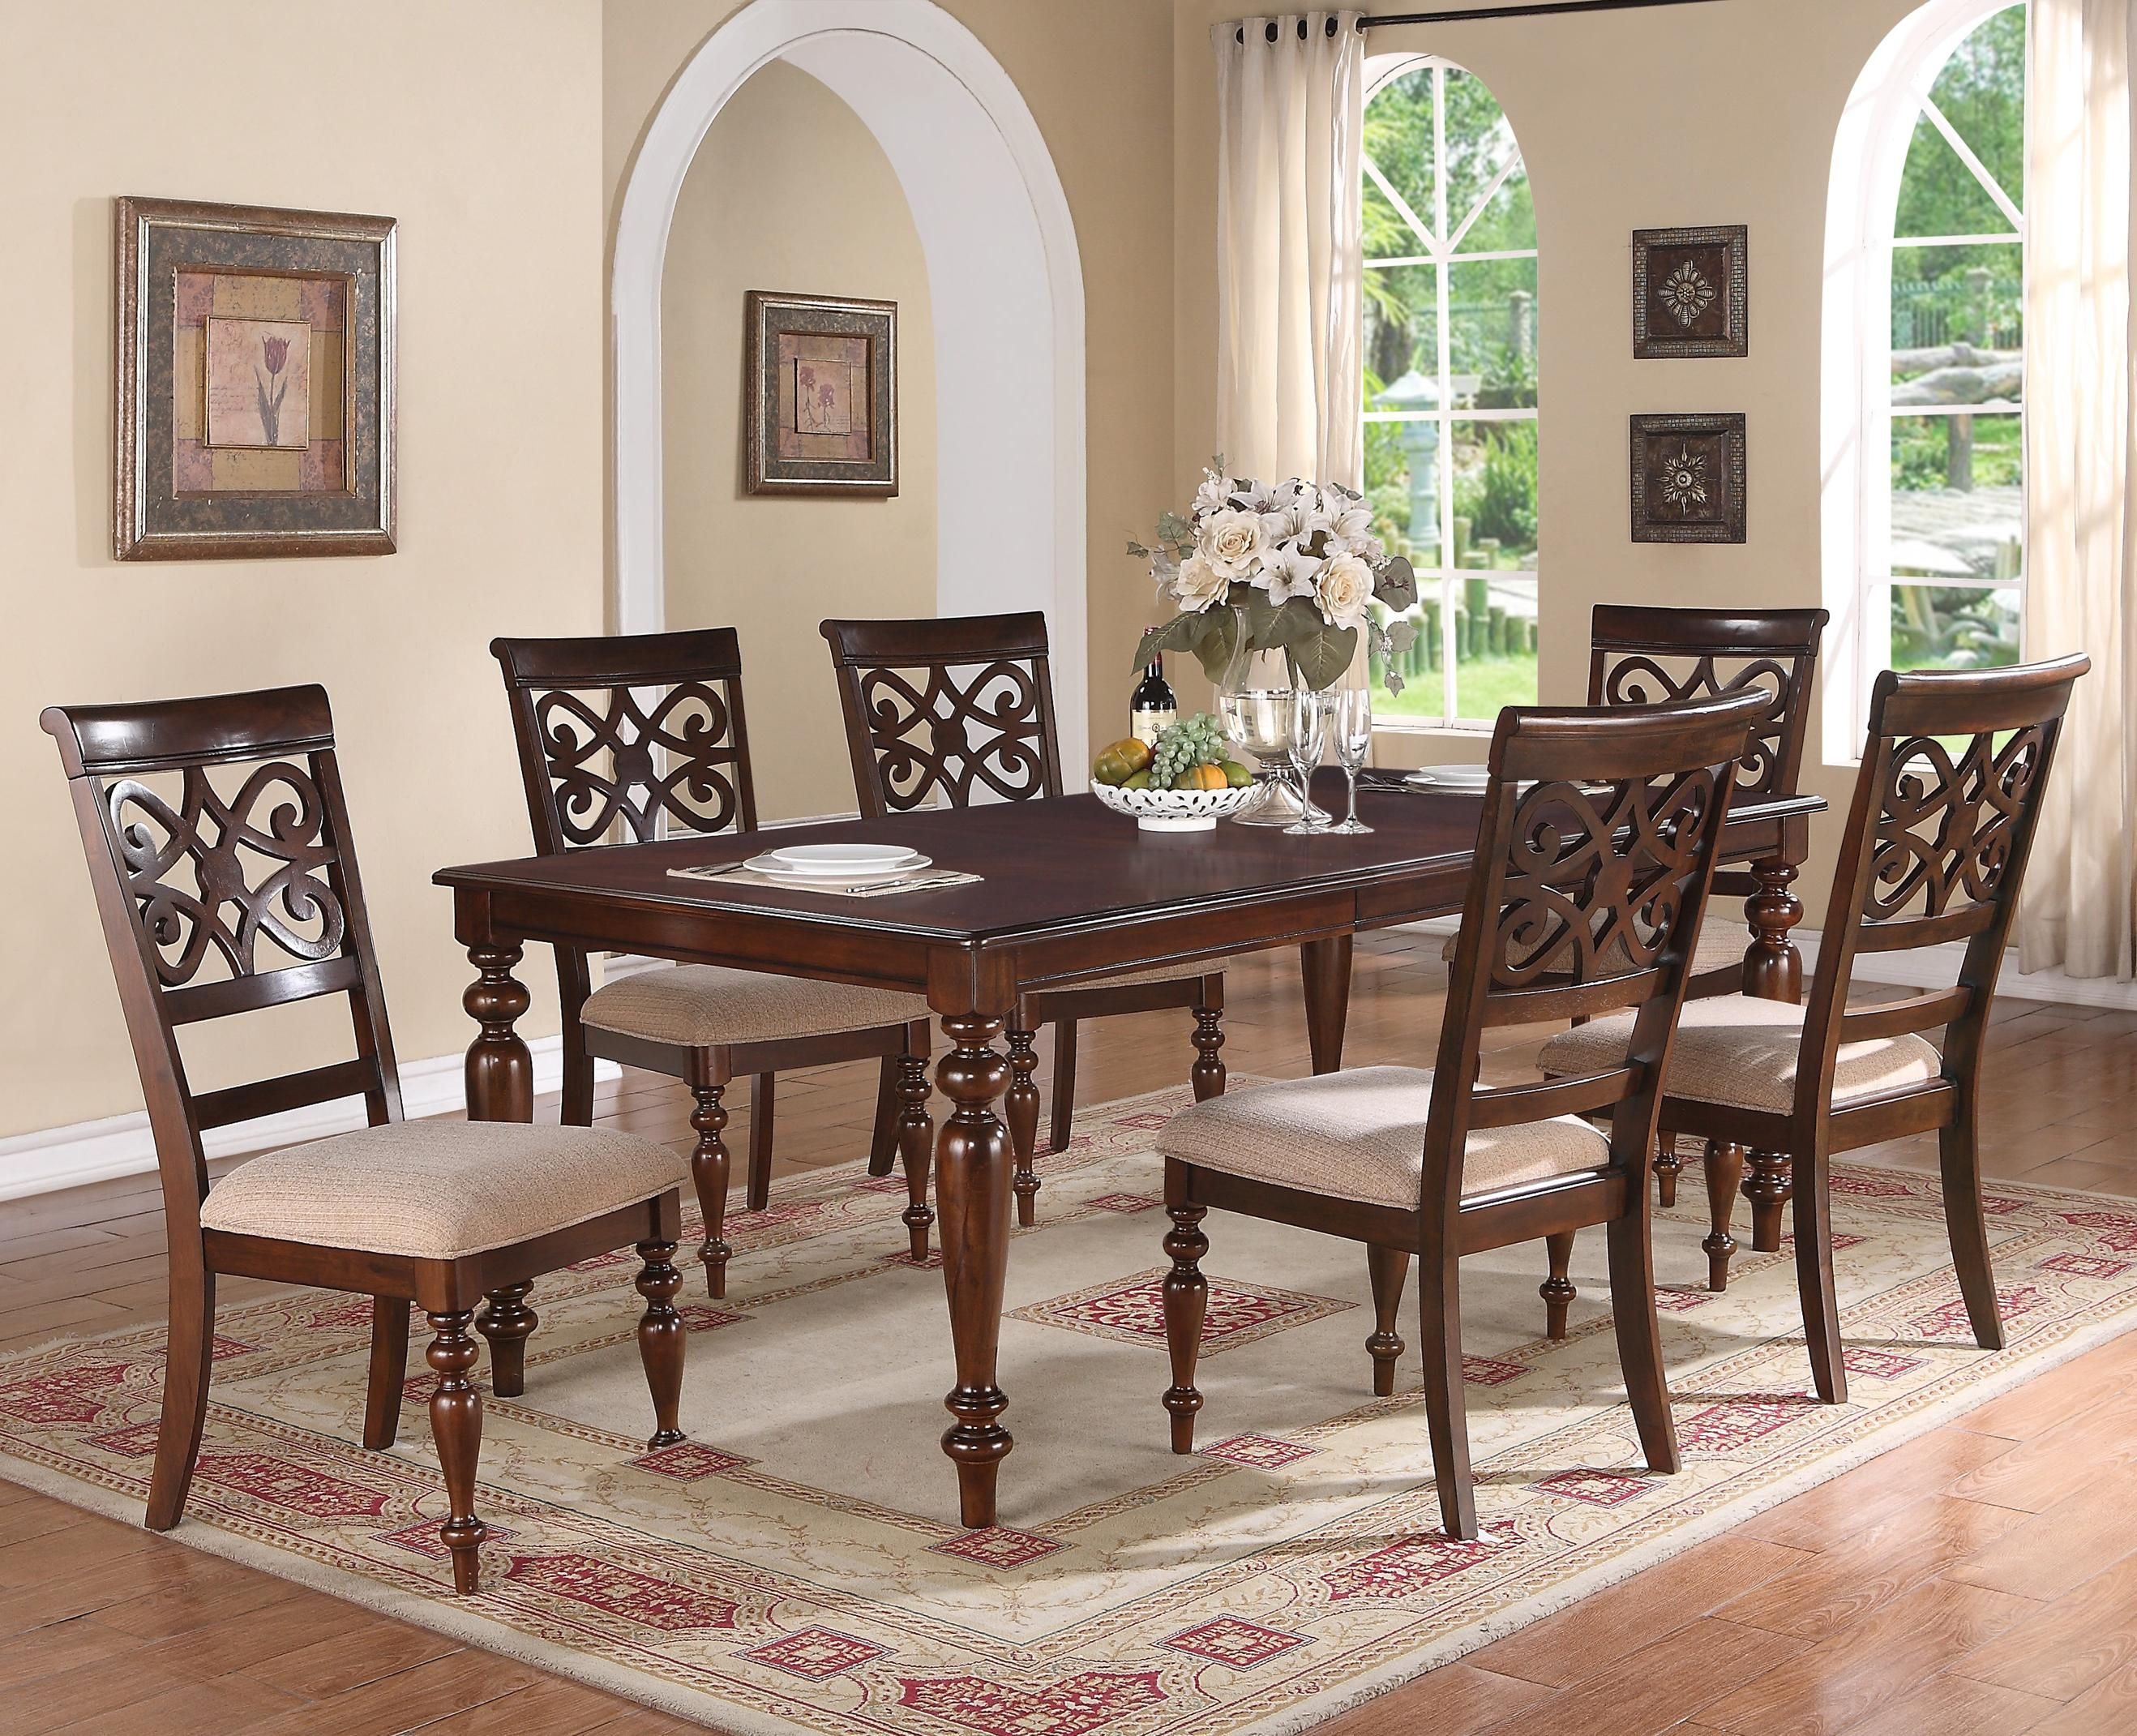 Aurora 7 Piece Table And Chairs Set By Crown Mark Dining Room